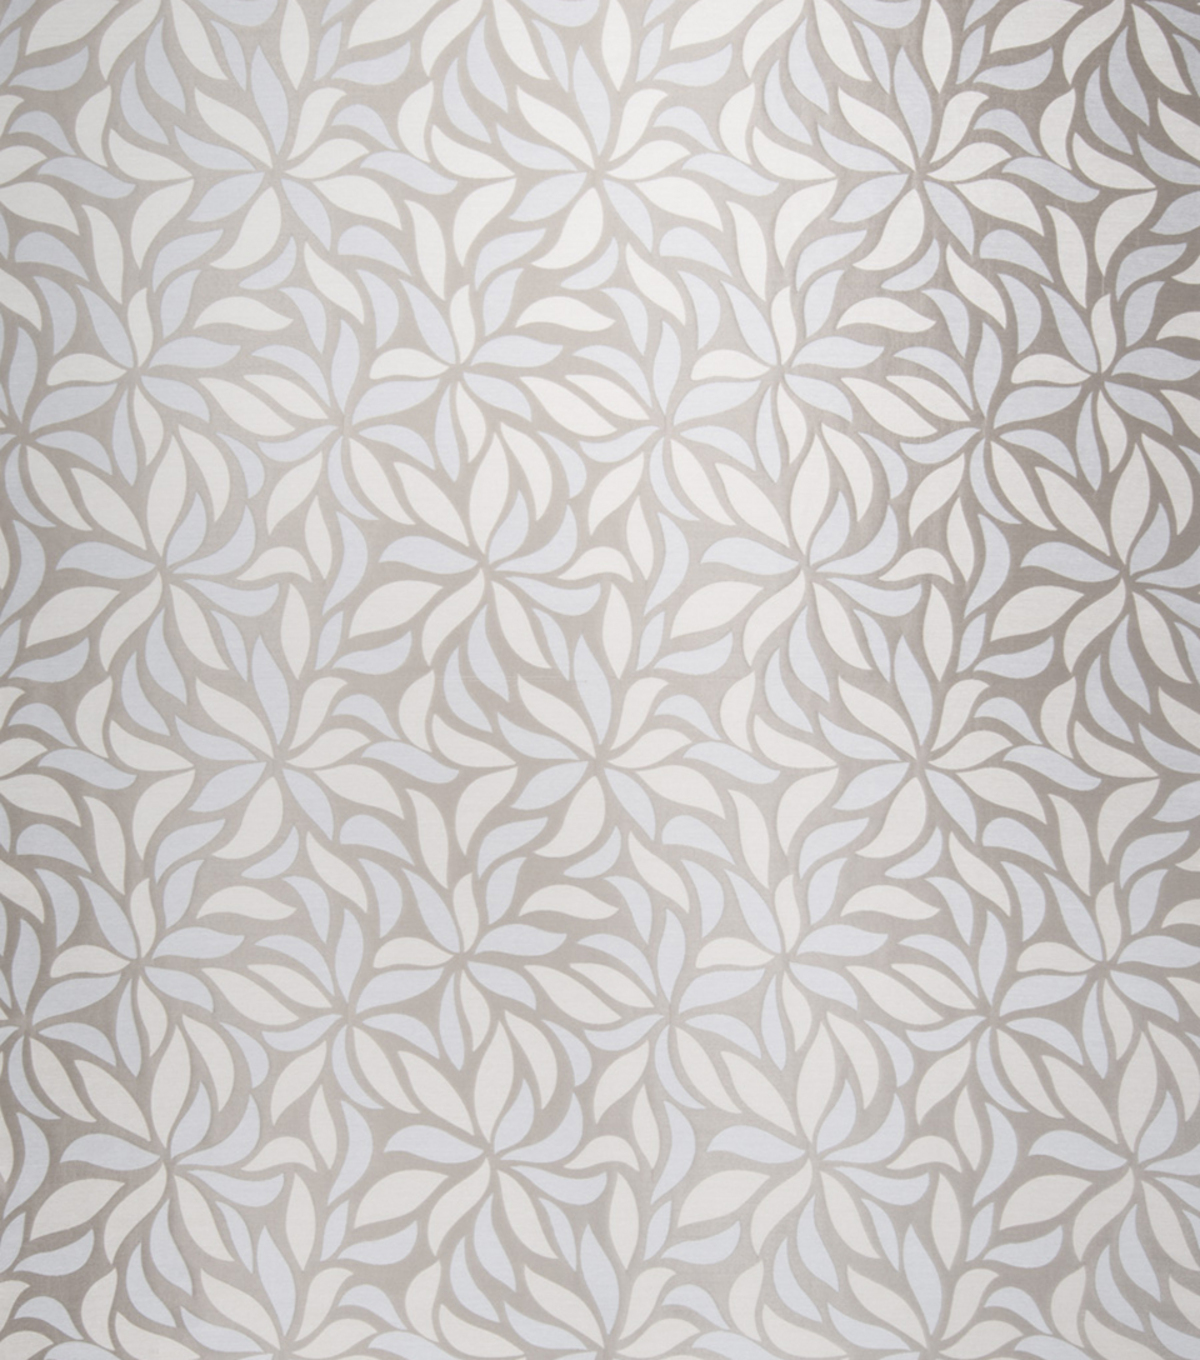 Home Decor 8\u0022x8\u0022 Fabric Swatch-Print Fabric Eaton Square Lewisville Grey